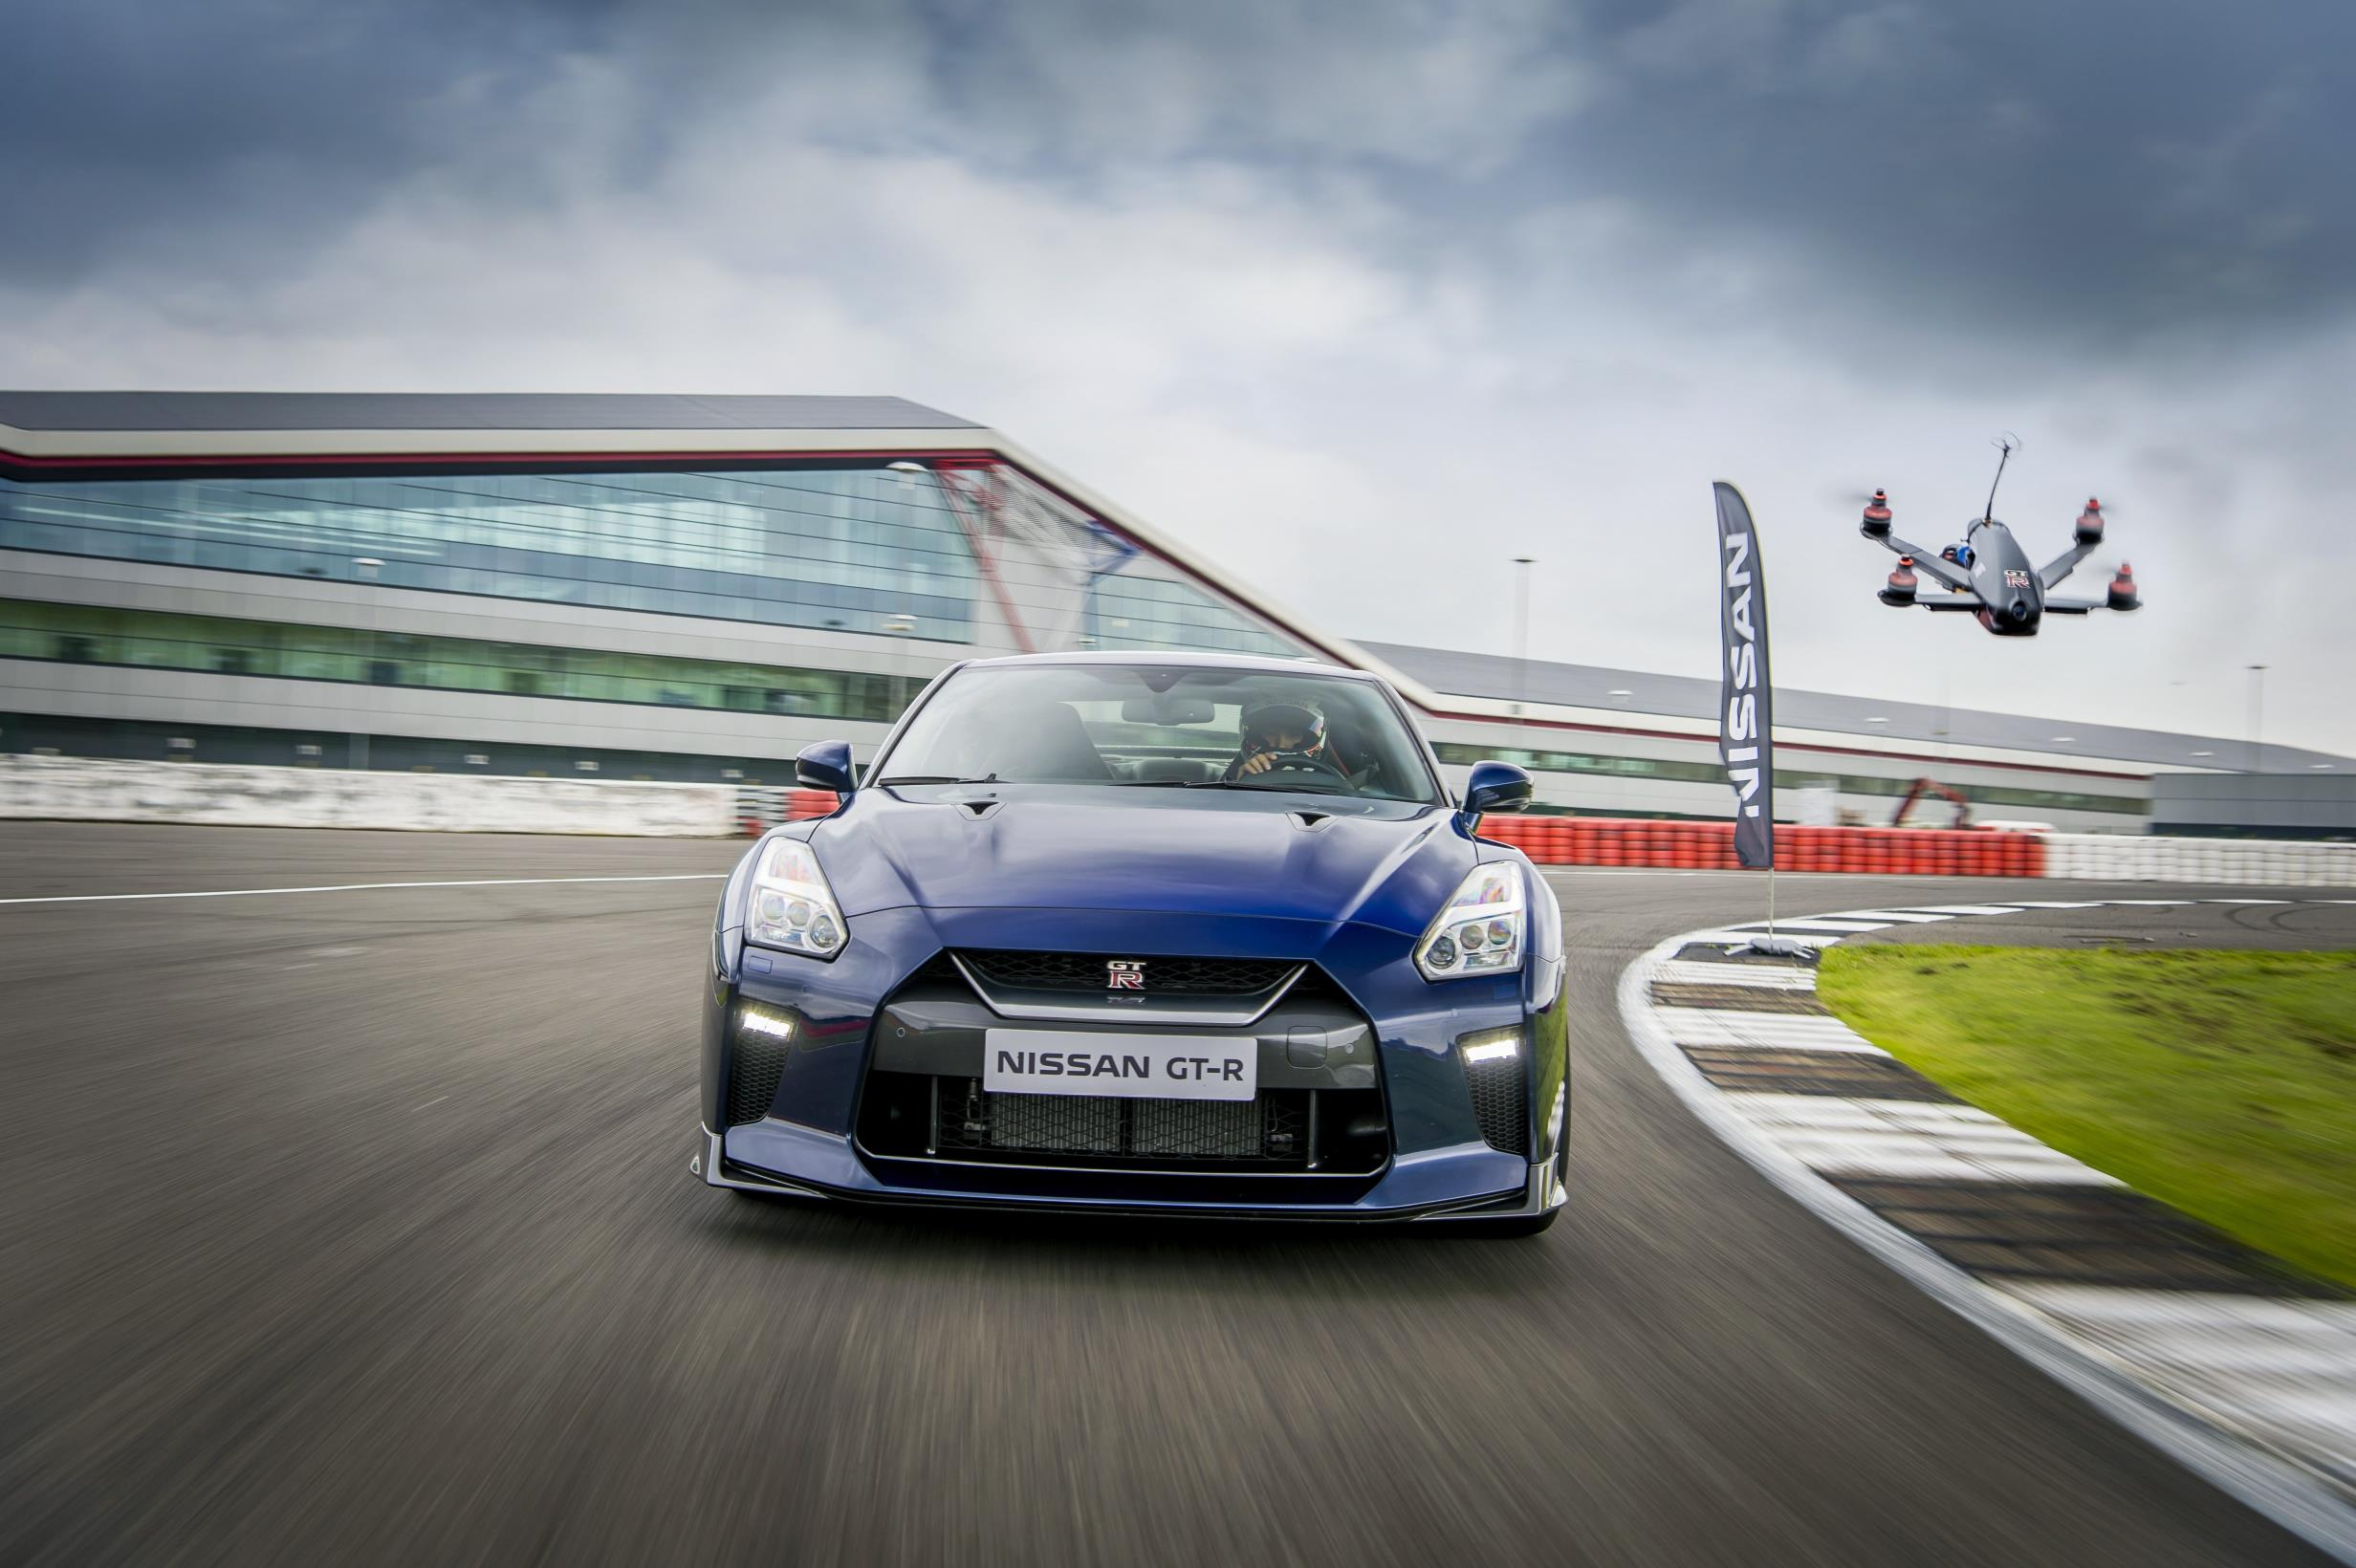 Nissan's new drone can keep up with the GT-R on a racetrack